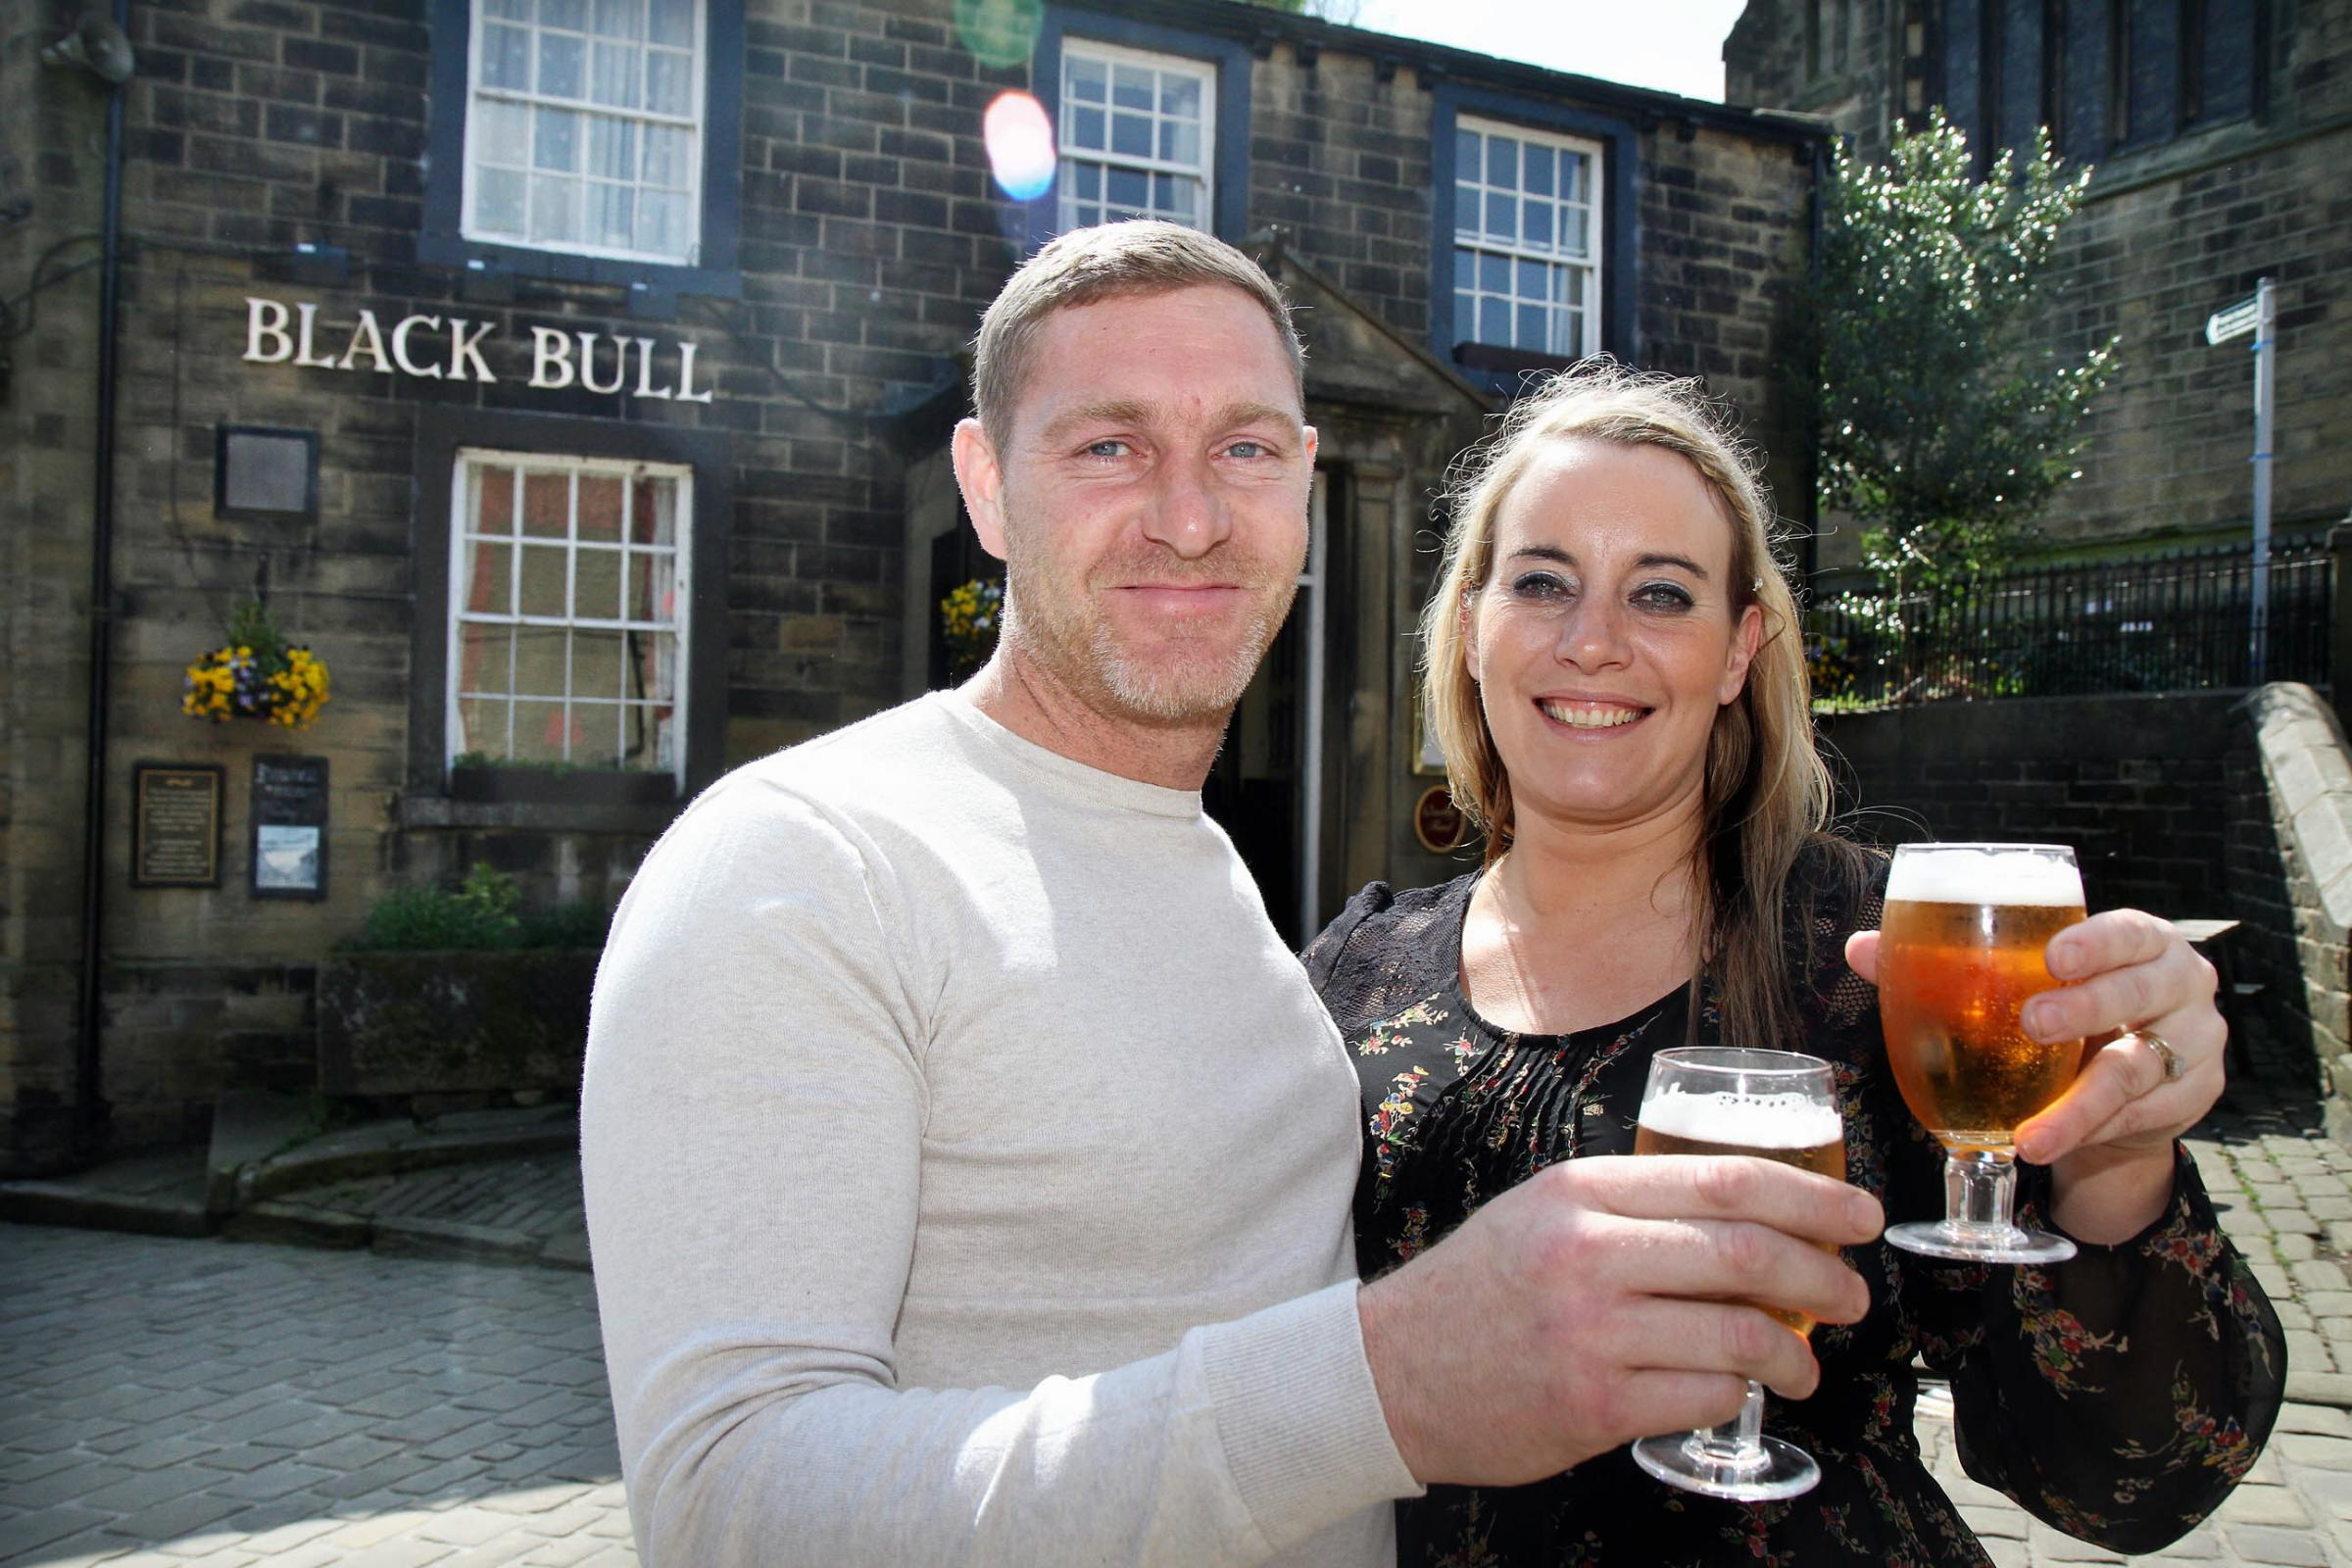 CHEERS: Leanne Forbes and her partner Michael Dewsnap outside the Black Bull pub in Haworth